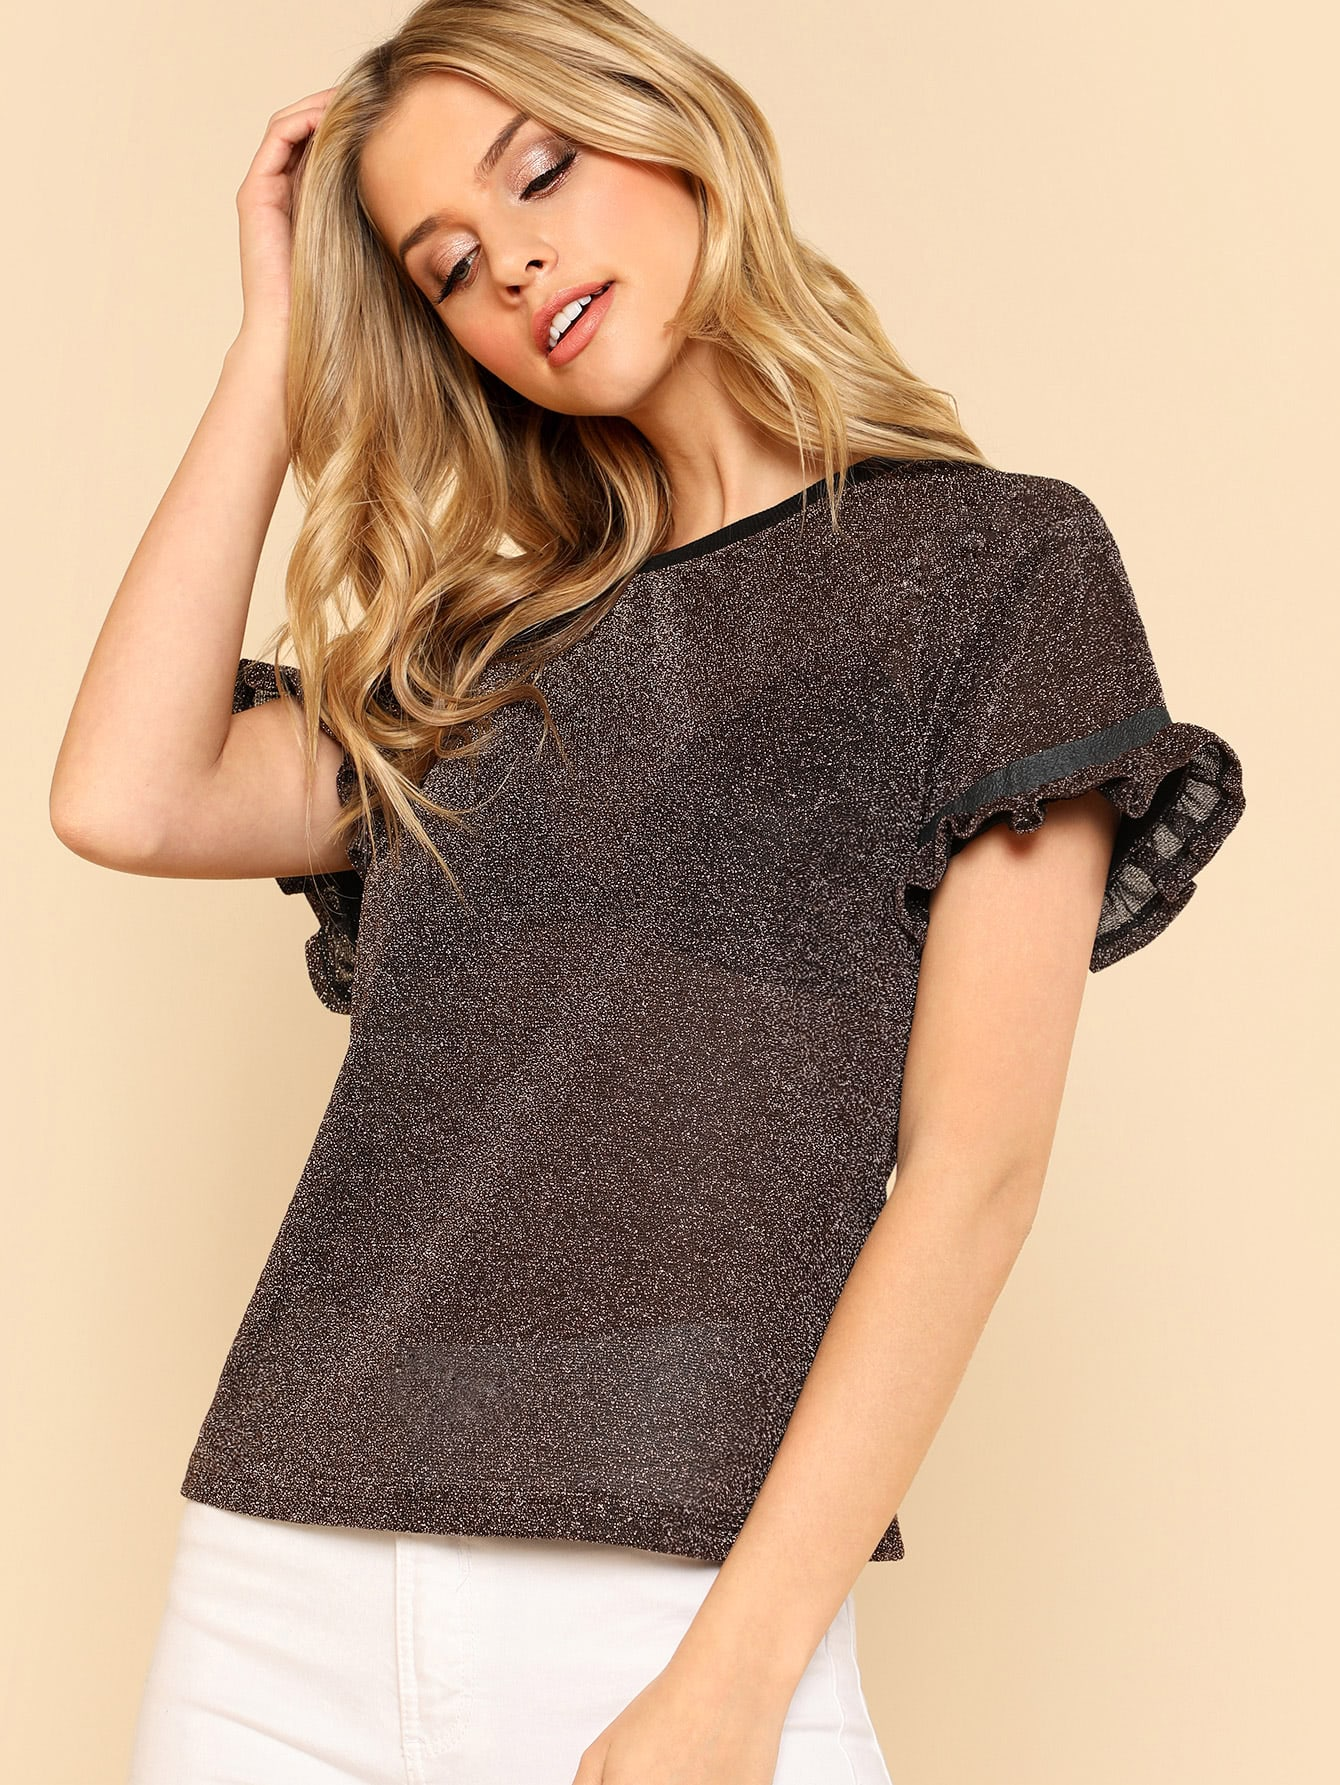 Contrast Tape Frill Trim Semi Sheer Glitter Top цена